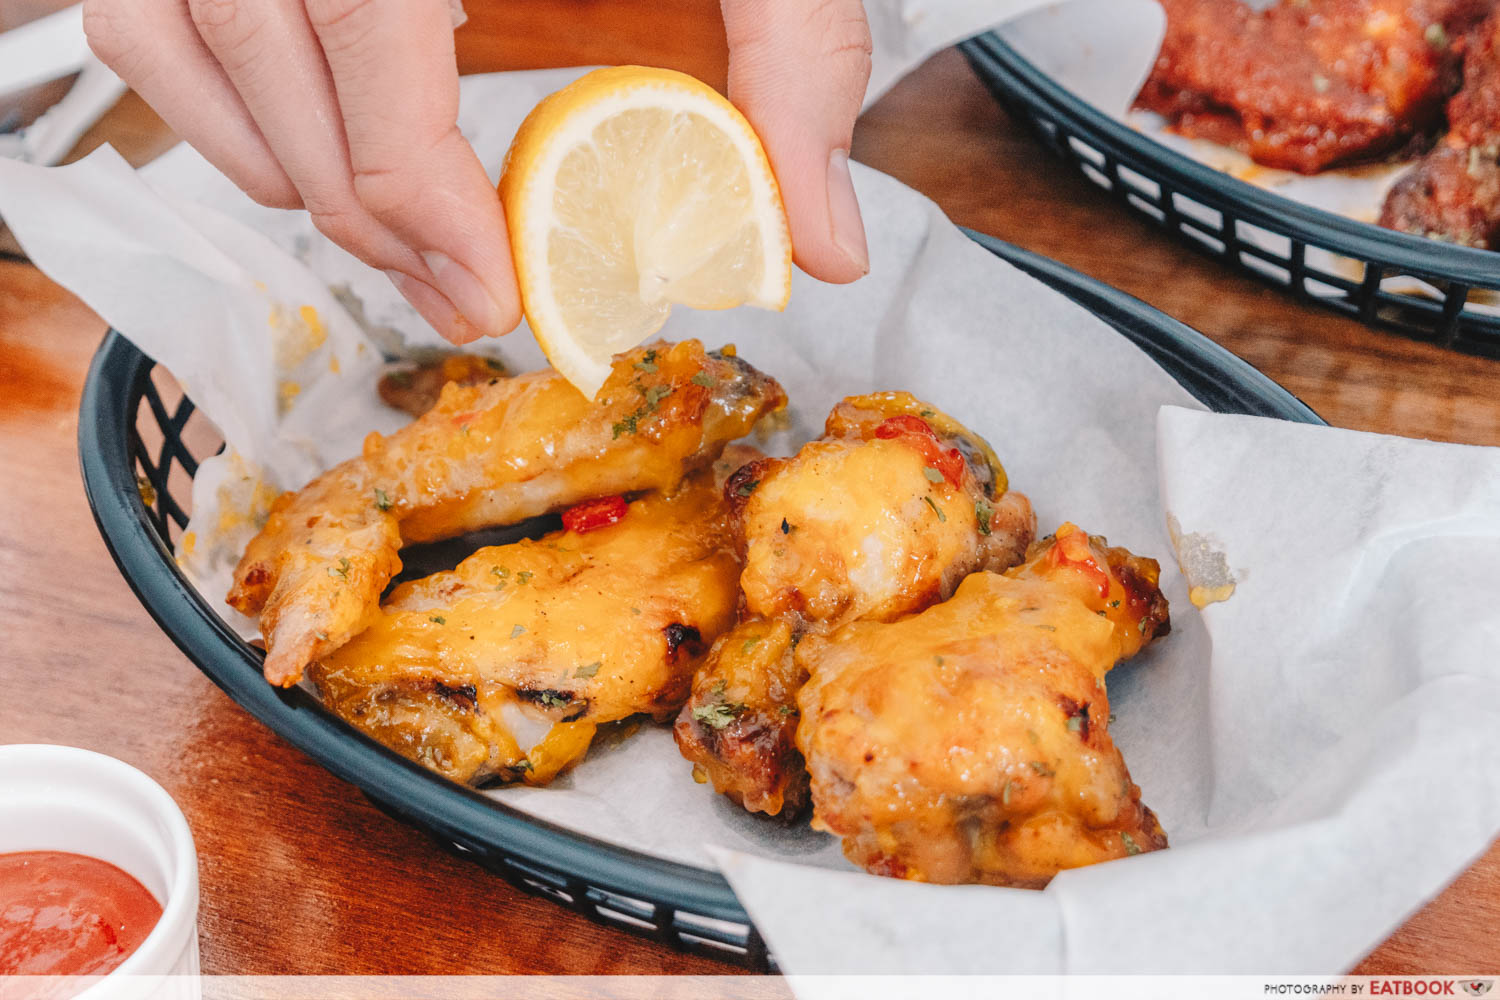 E1 Wingz - Zesty orange wings lemon squeeze